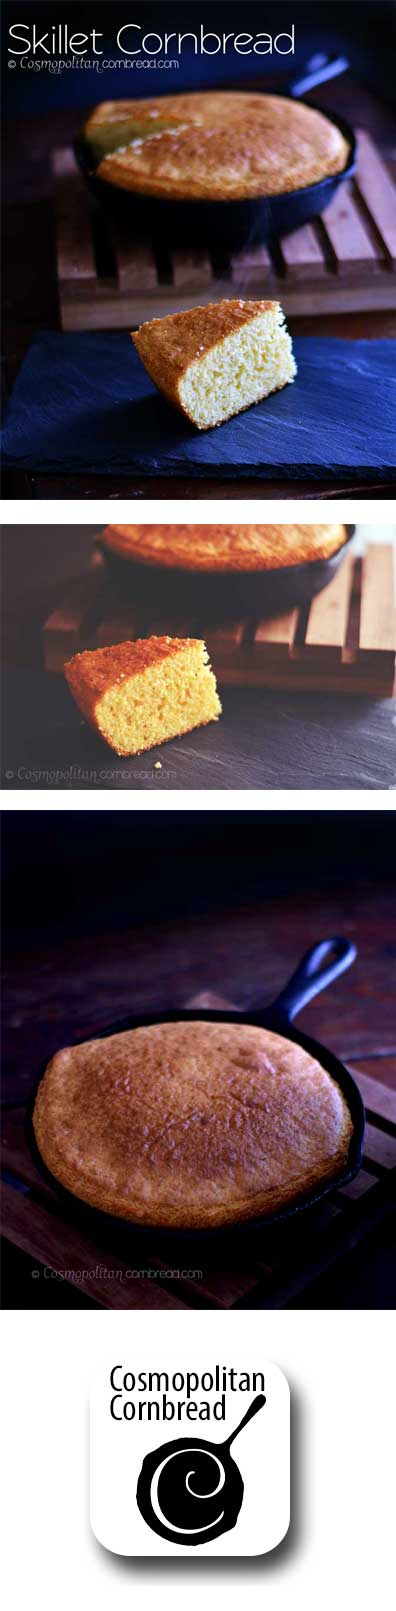 Good old-fashioned Skillet Cornbread - get the recipe from Cosmopolitan Cornbread